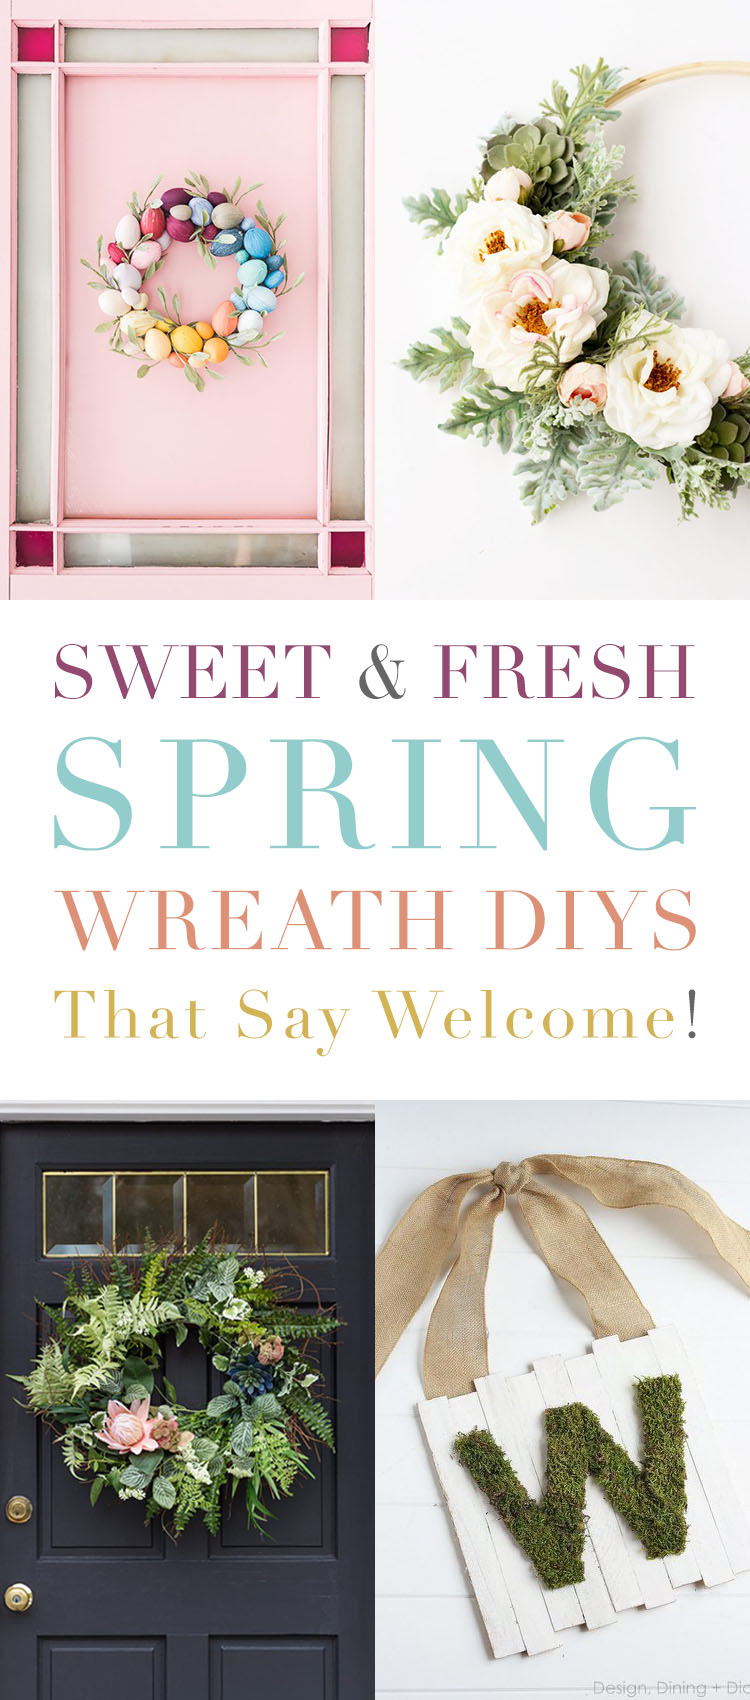 Sweet and Fresh Spring Wreath DIYS That Say Welcome!